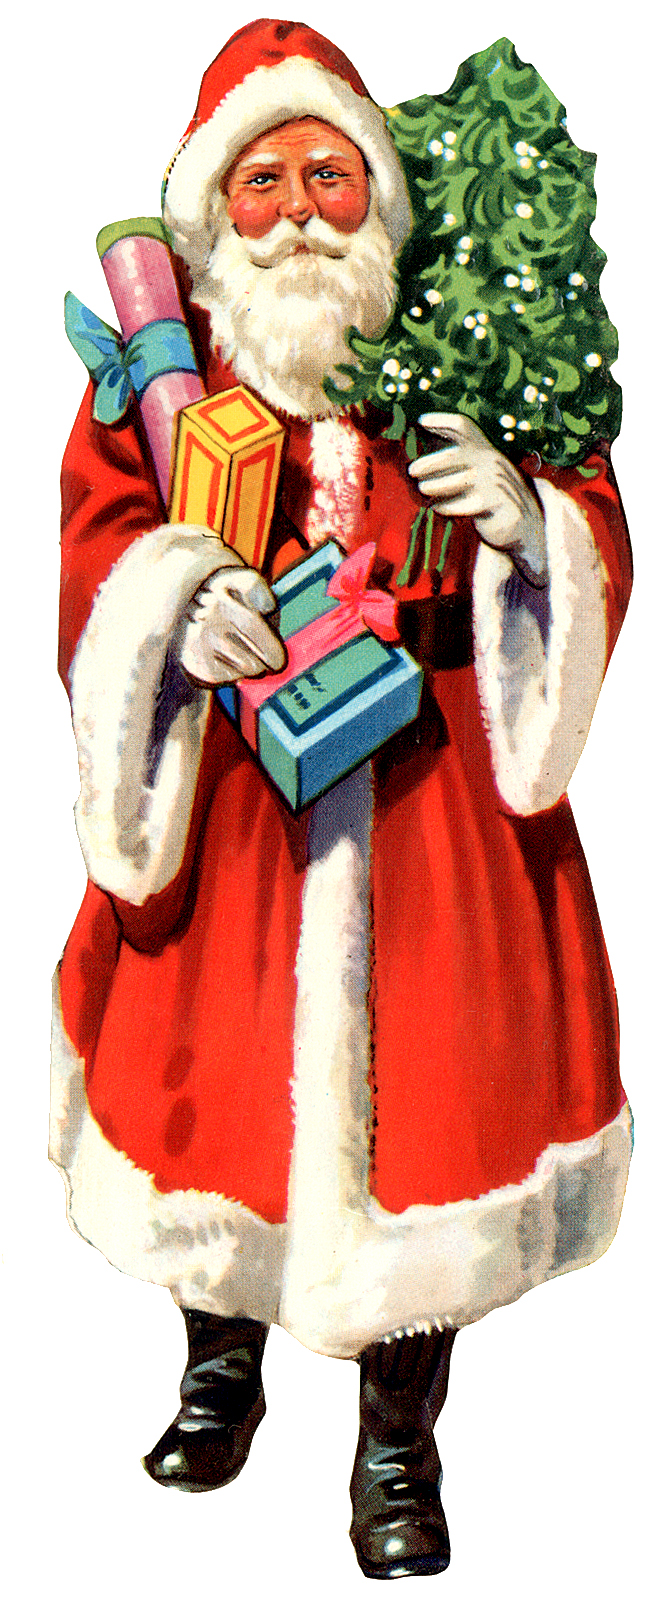 666x1599 Clipart Of Old Fashioned Santa Claus Amp Clip Art Of Old Fashioned